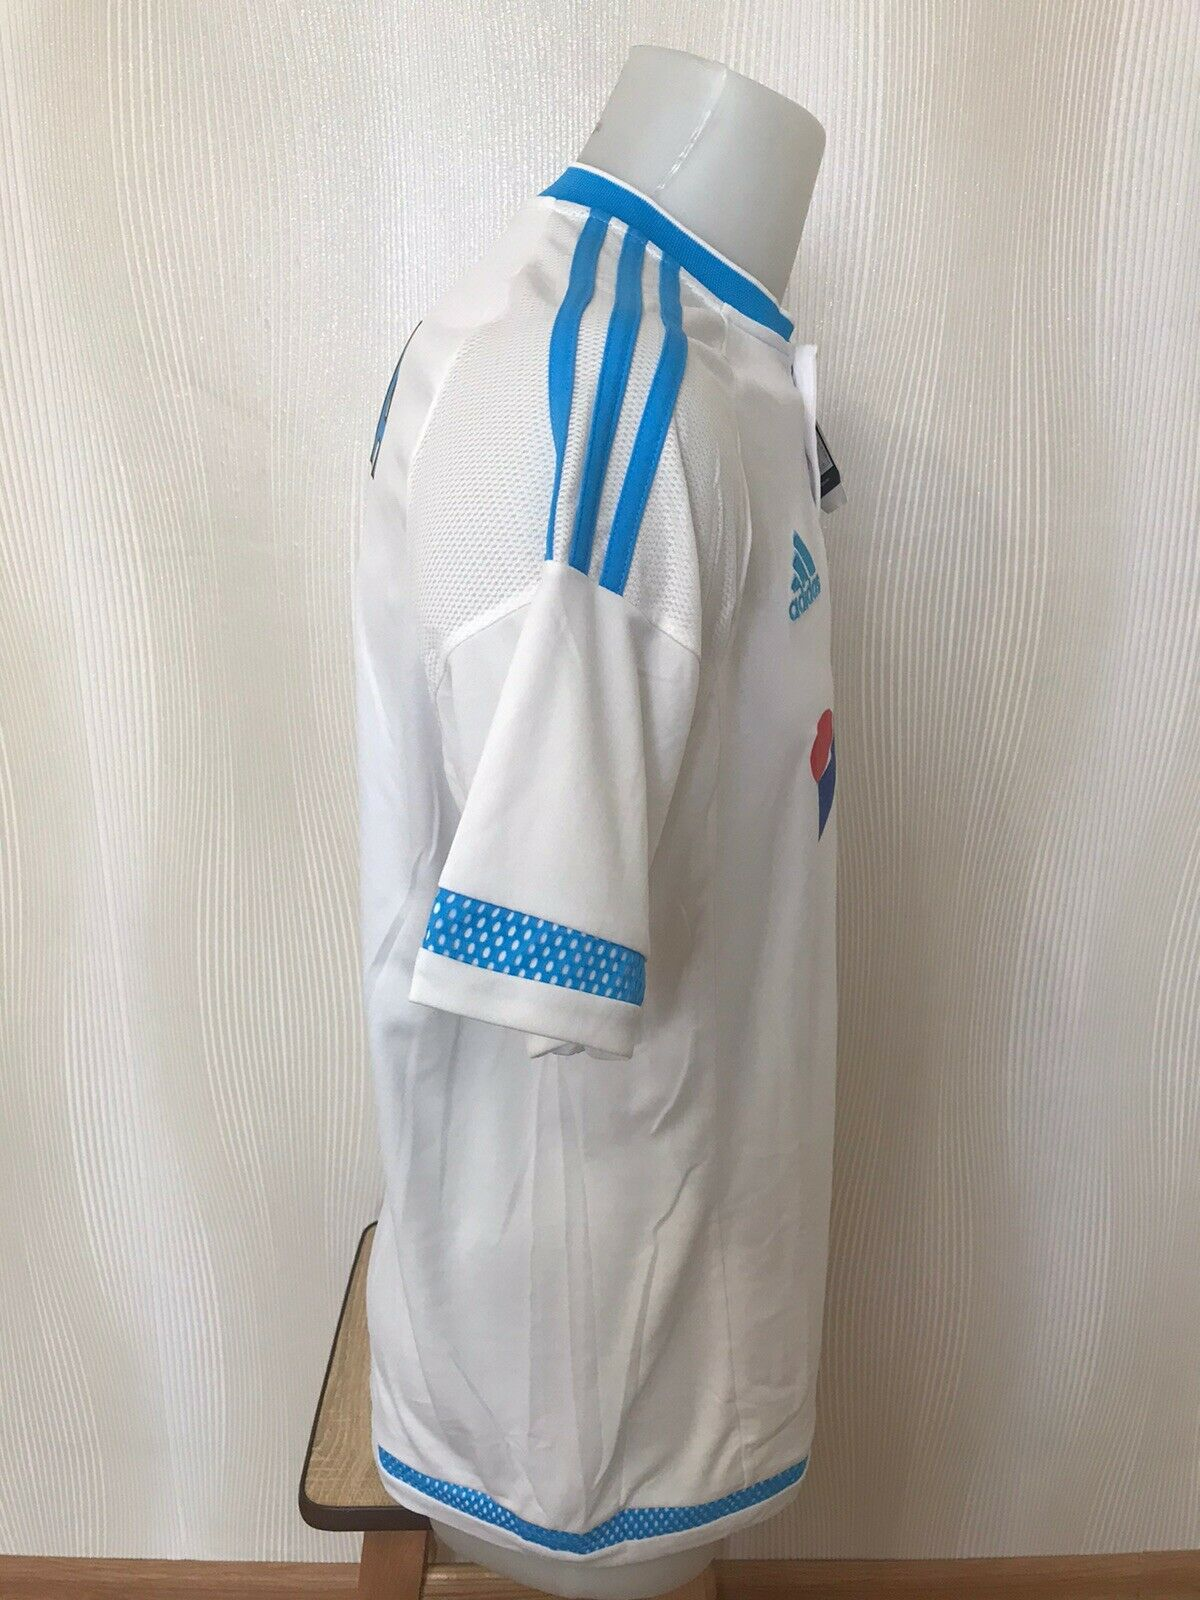 Olympique Marseille #8 Lucas Silva 2015/2016 Home Size L Adidas S11891 jersey